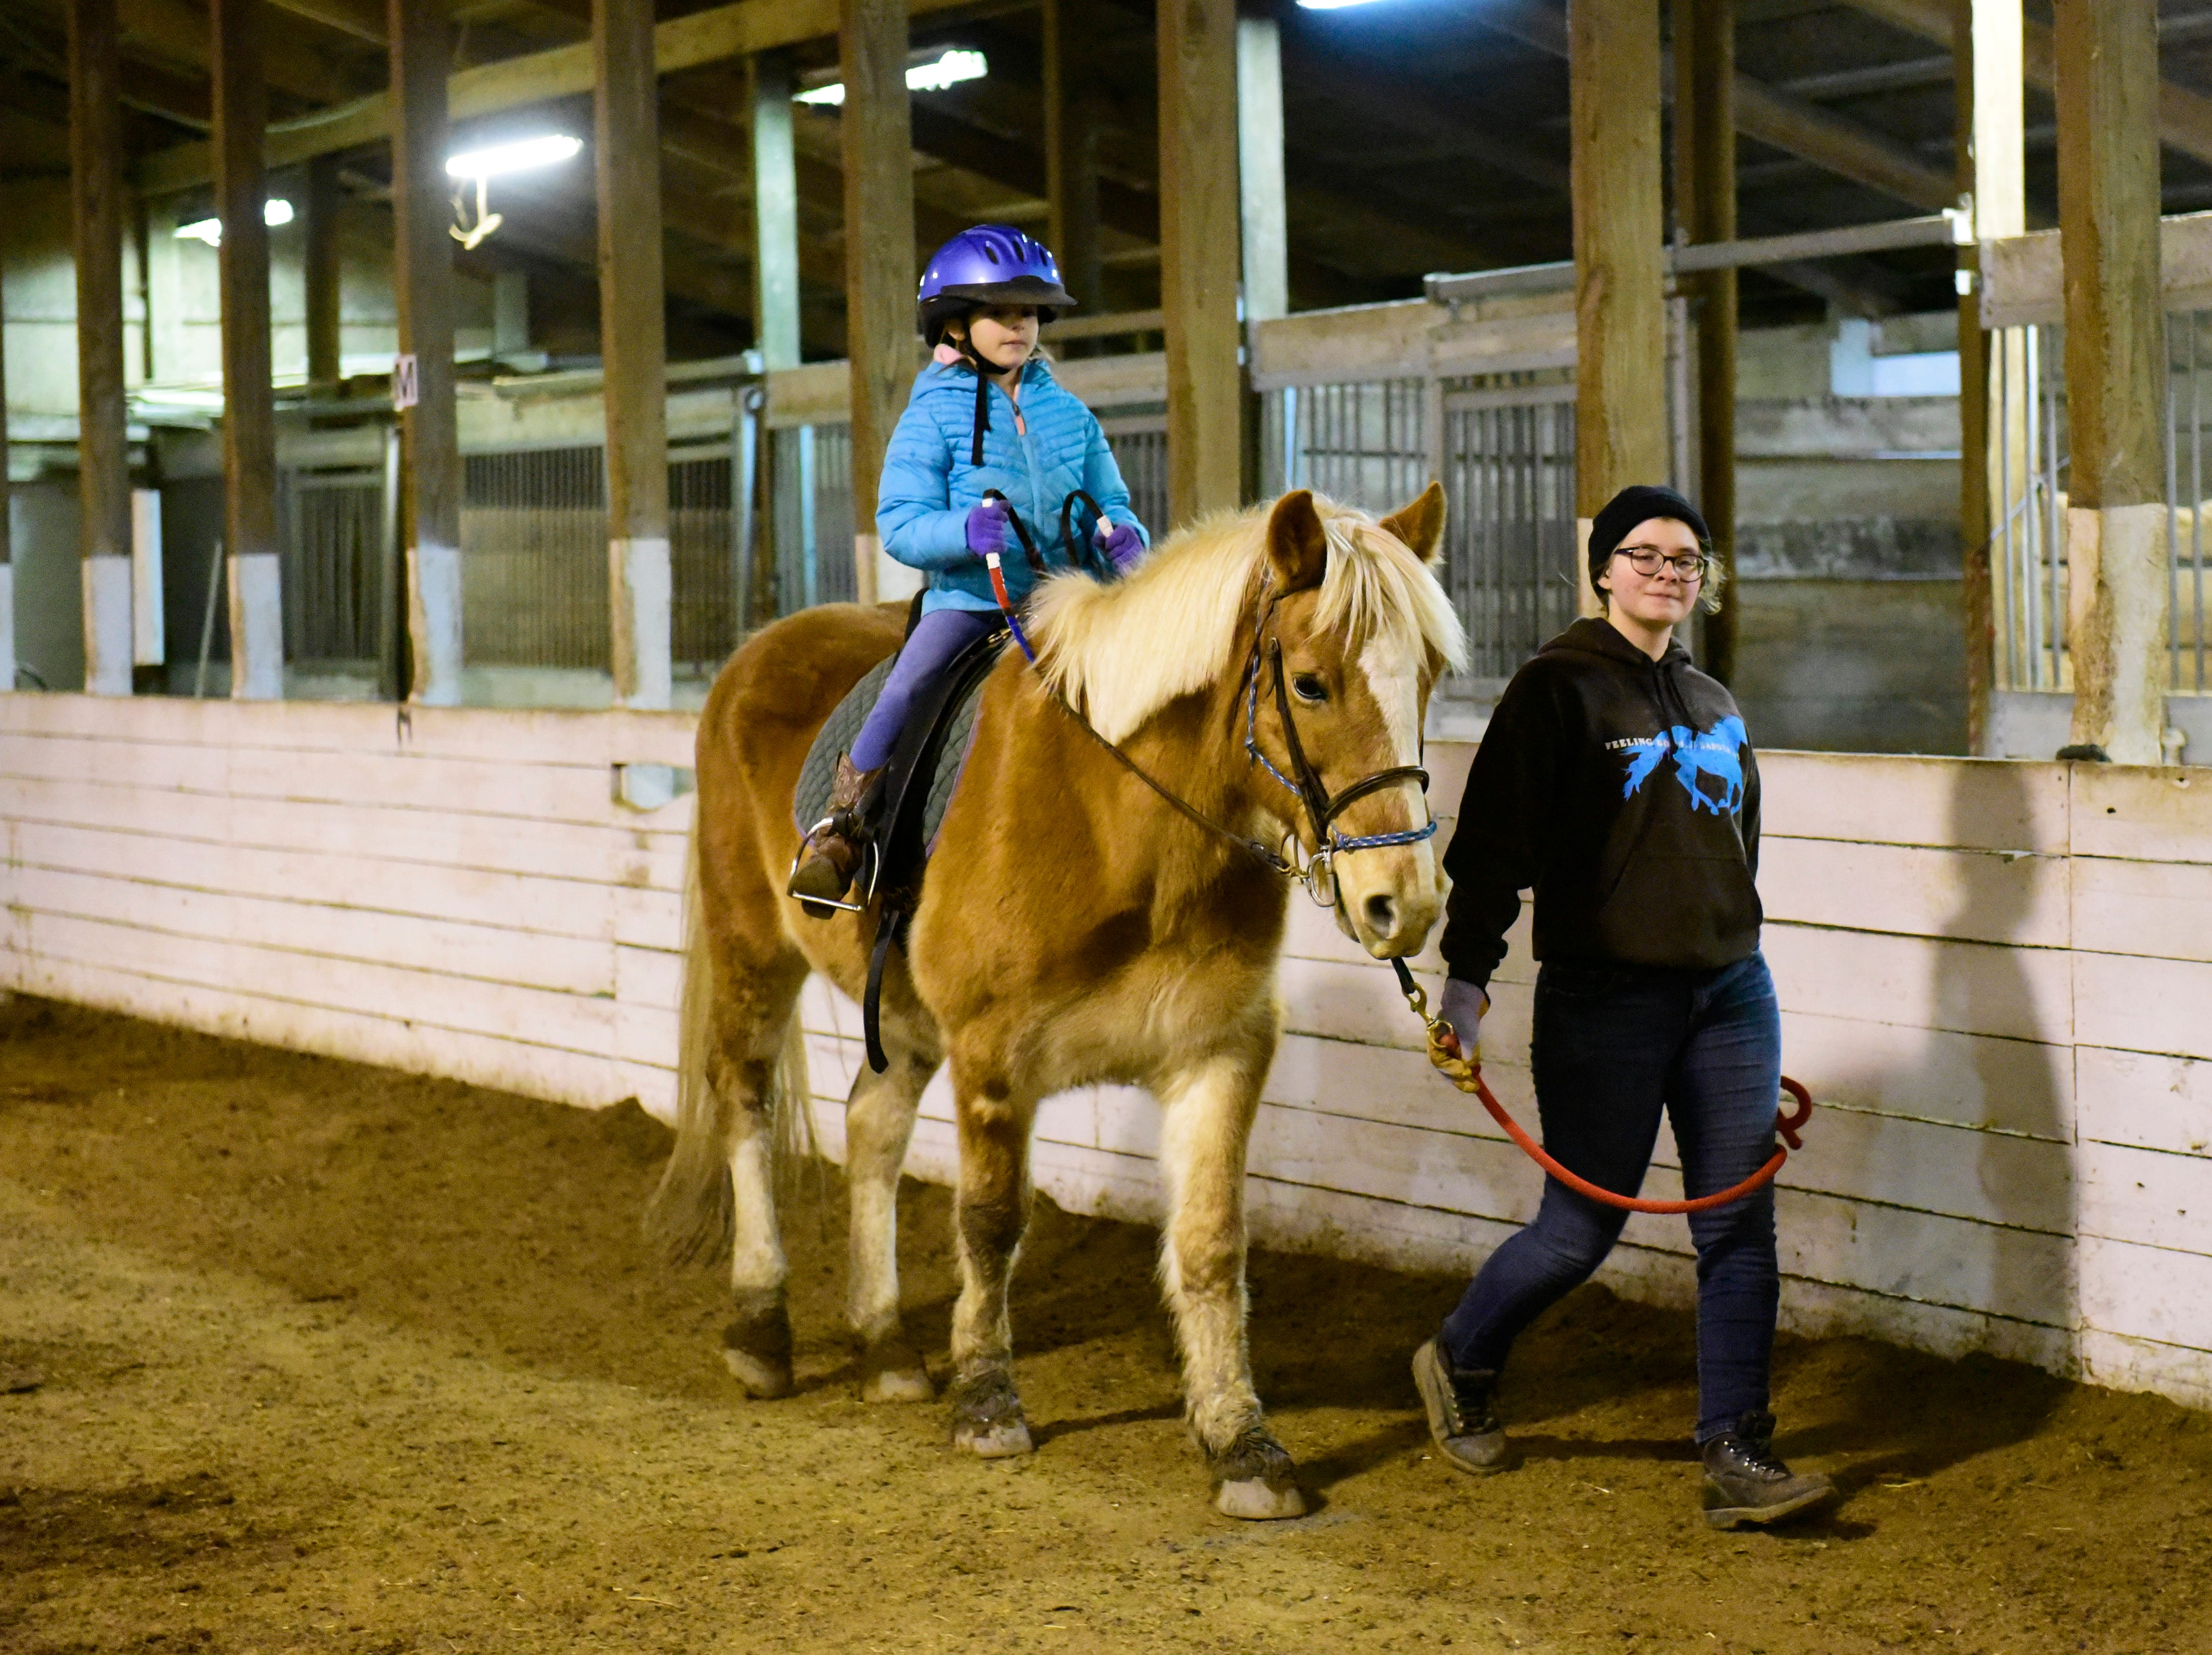 Aubrey Messa, 8, of Oak Harbor rides Gracie, a 13 year old Haflinger mare, with help from volunteer leader Ava Van Ness.